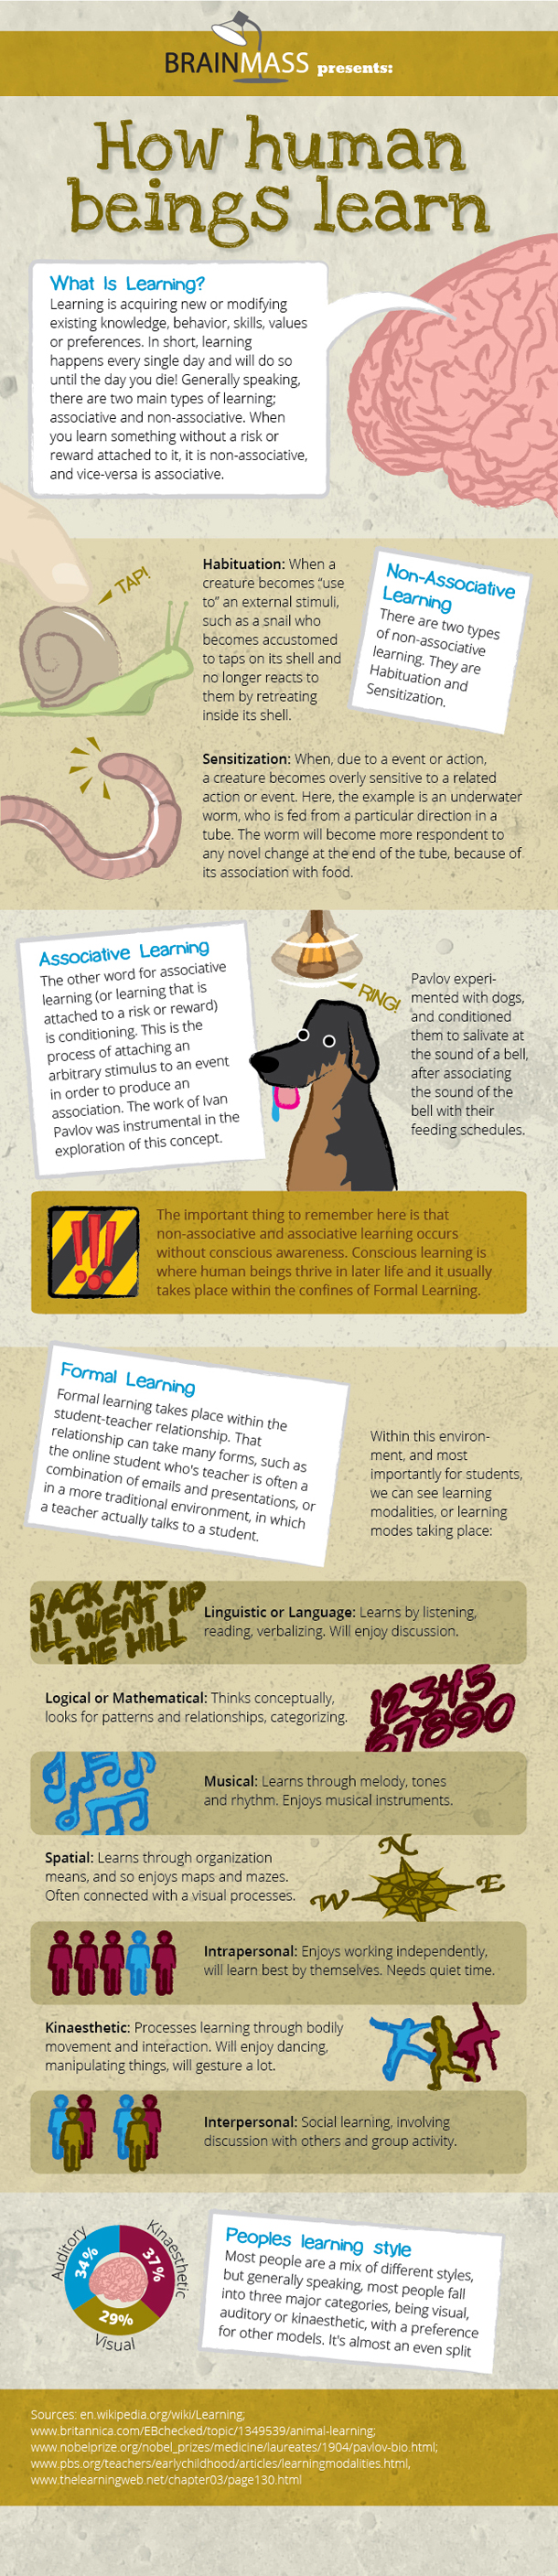 How Human Beings Learn [INFOGRAPHIC]